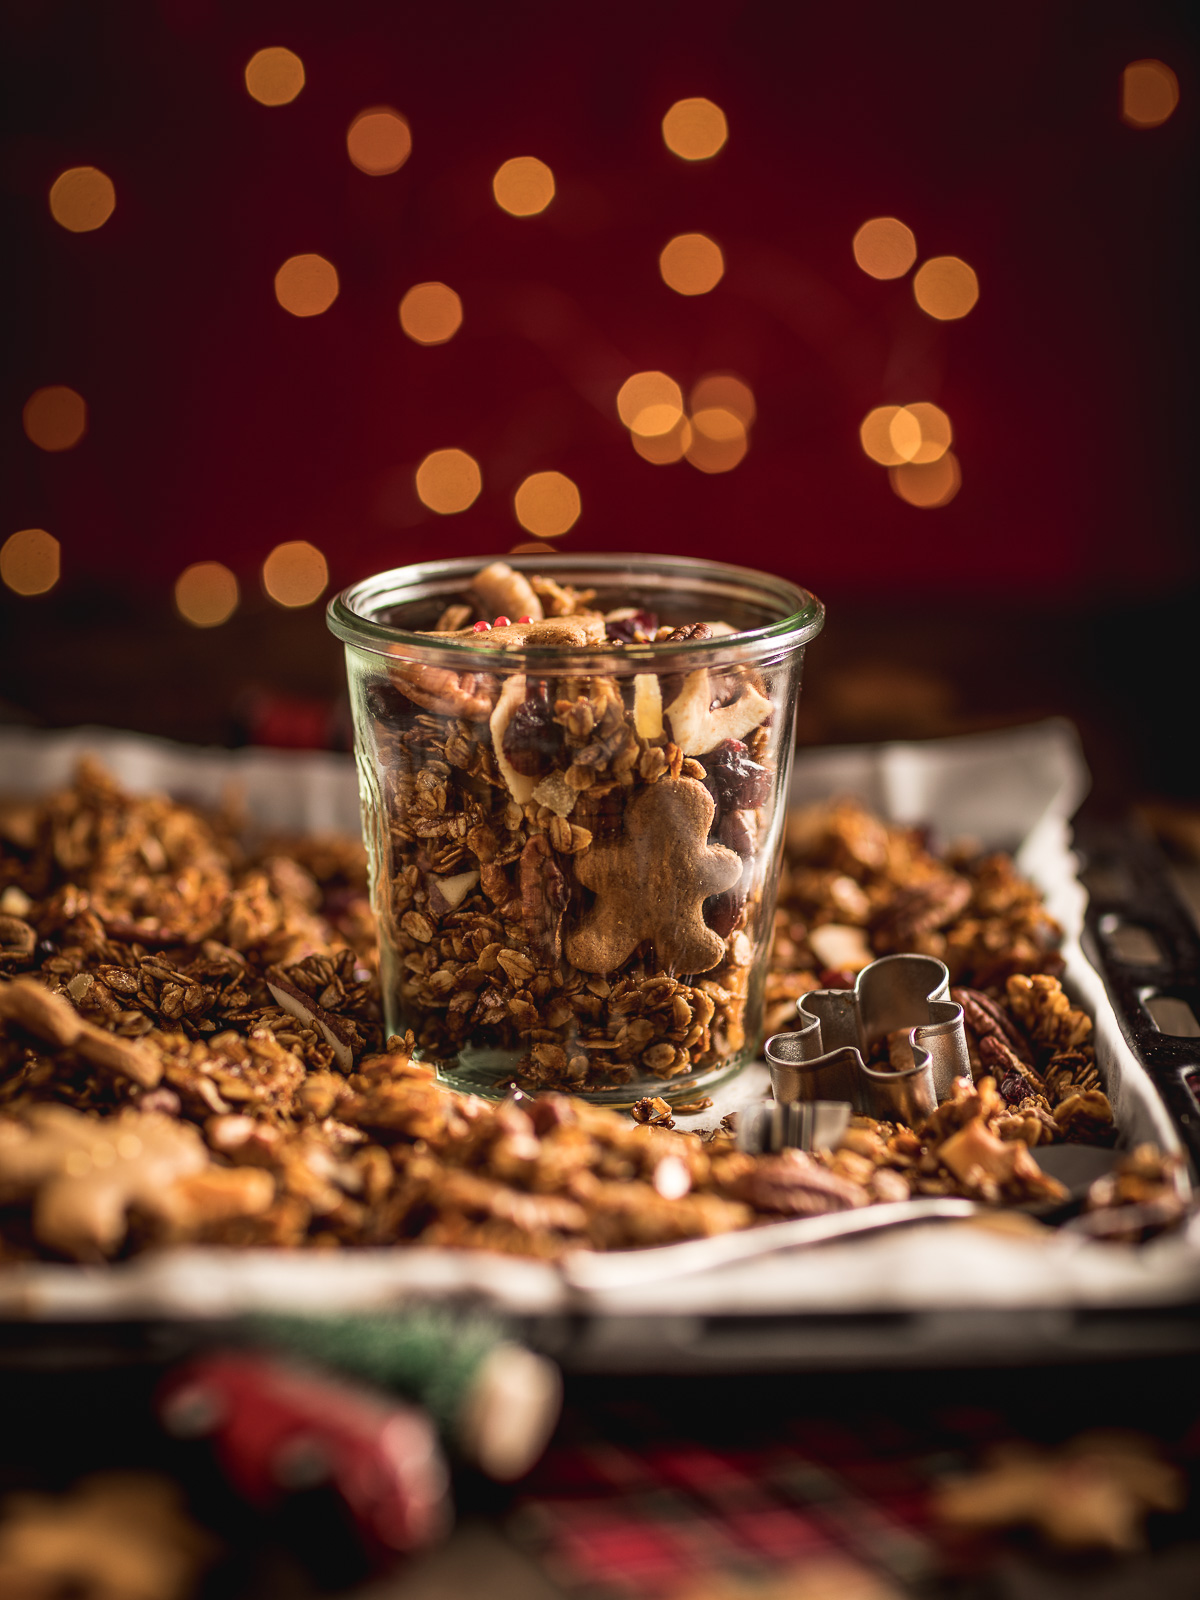 Gingerbread Granola for breakfast Crispy sweet and spiced recipe diy Christmas gift idea #vegan #glutenfree ricetta granola pan di zenzero colazione sana idea regalo di Natale